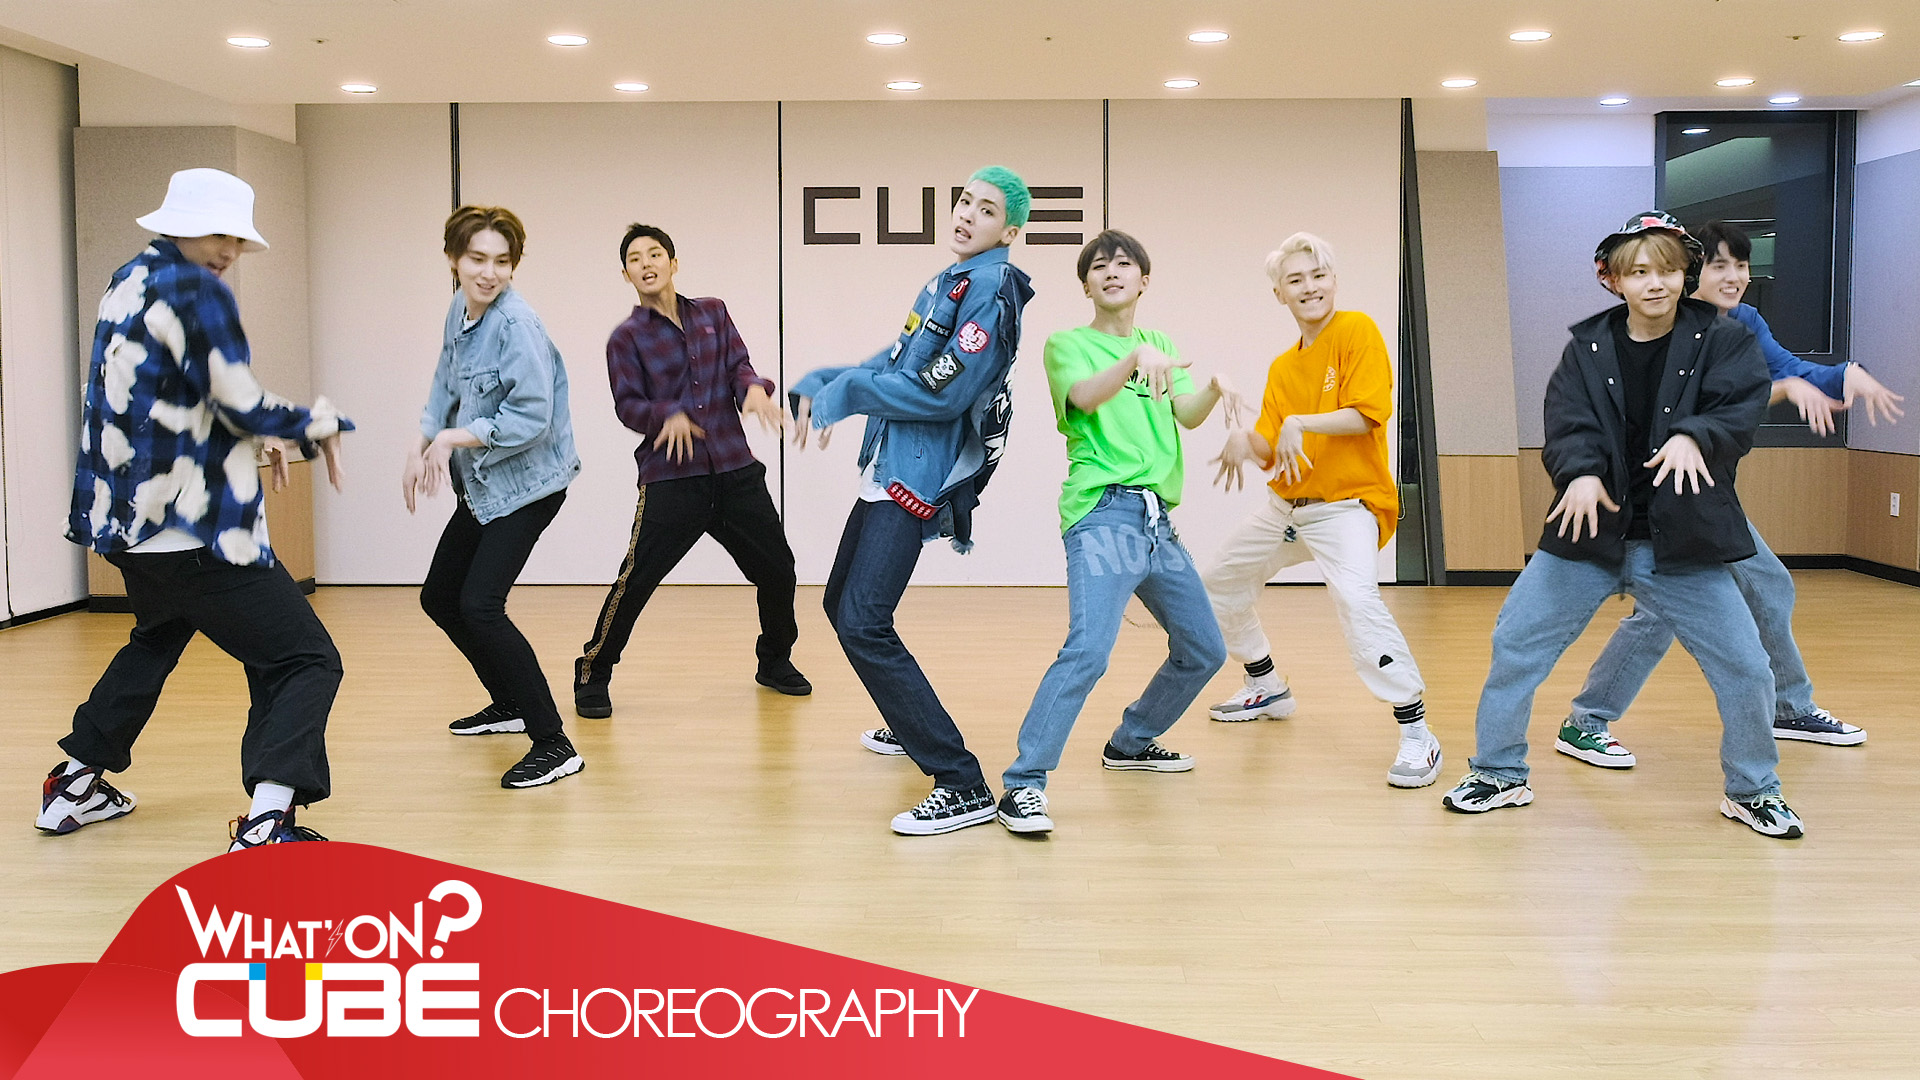 펜타곤 - '청개구리(Naughty boy)' (Choreography Practice Video)